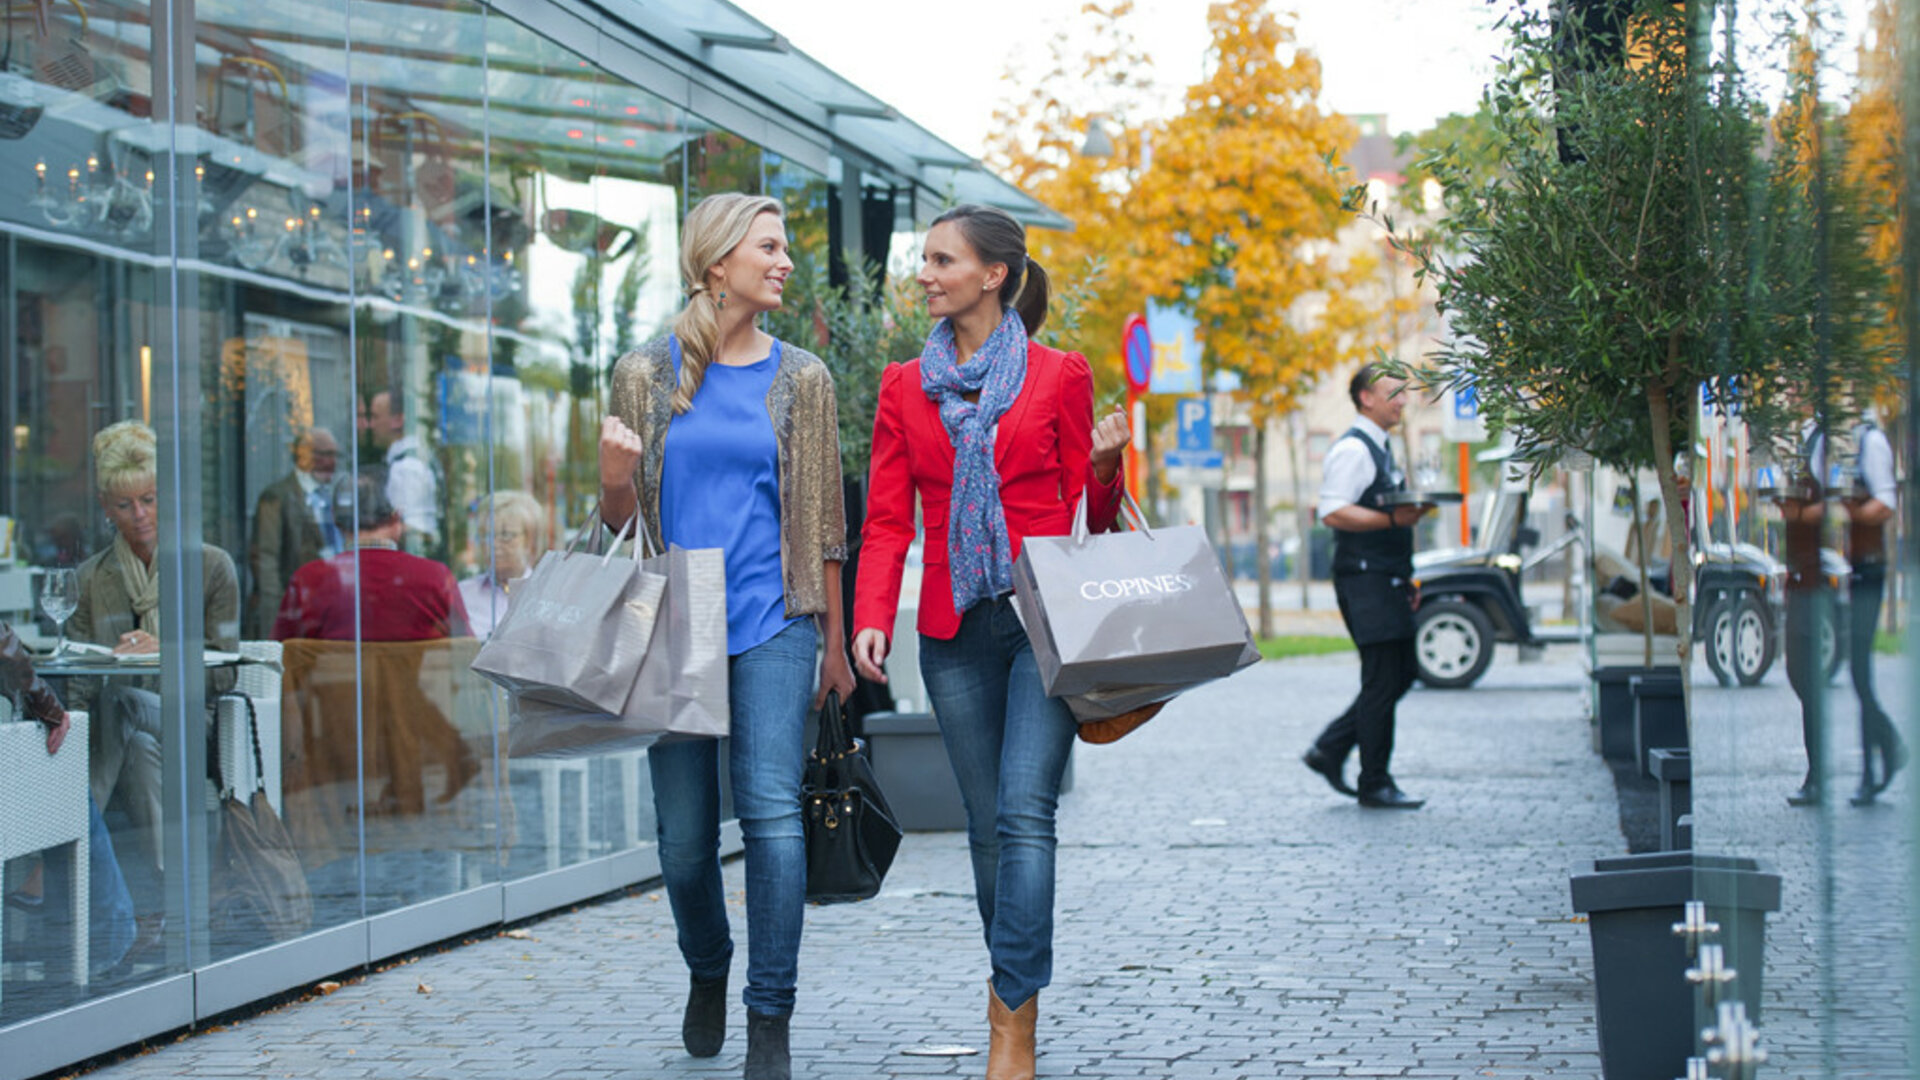 HasHotel - BATHROOM ROOMS DE LUX